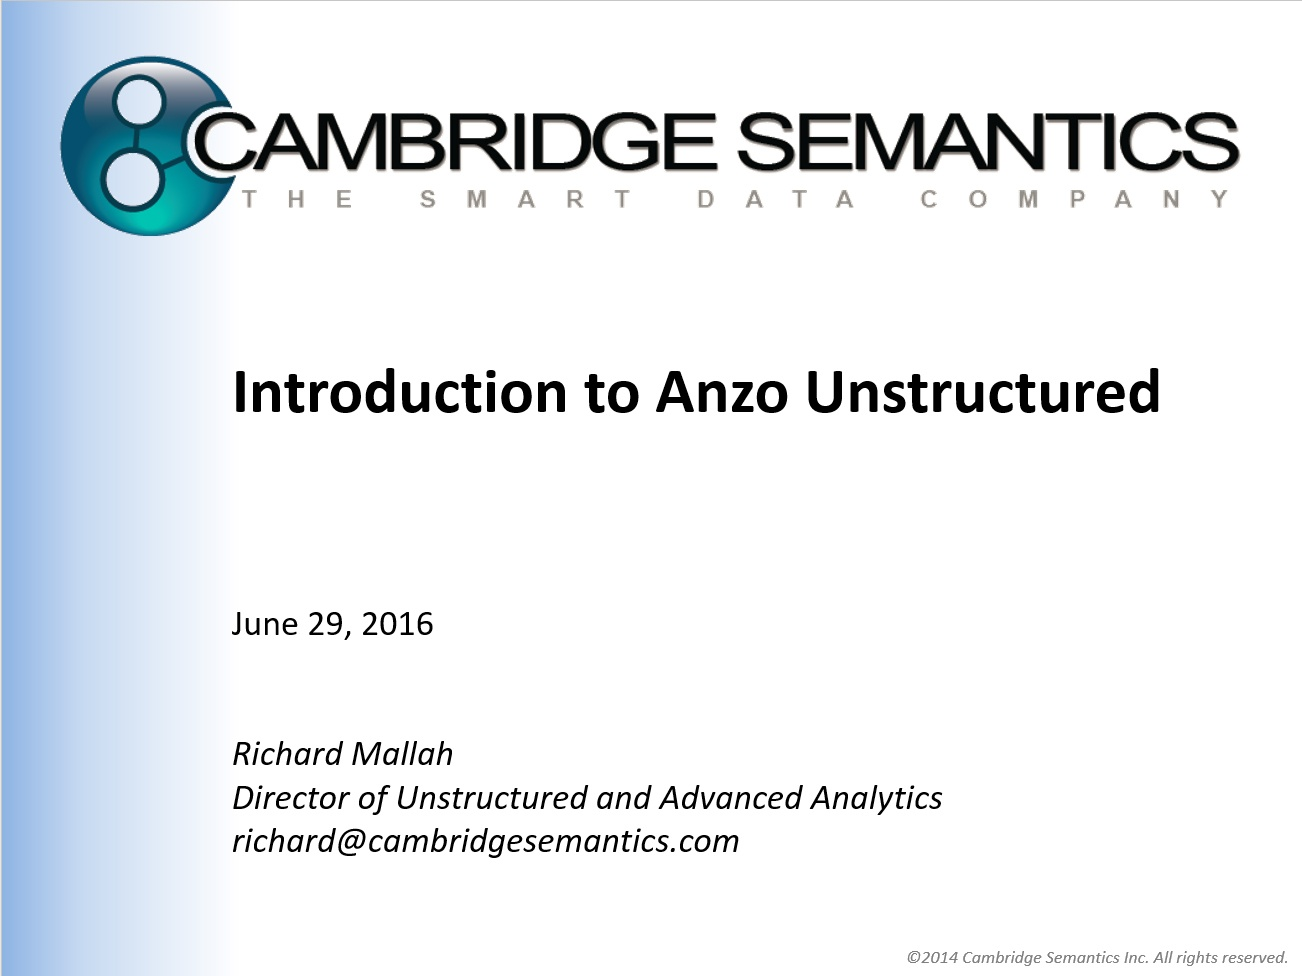 introduction_to_anzo_unstructured.jpg